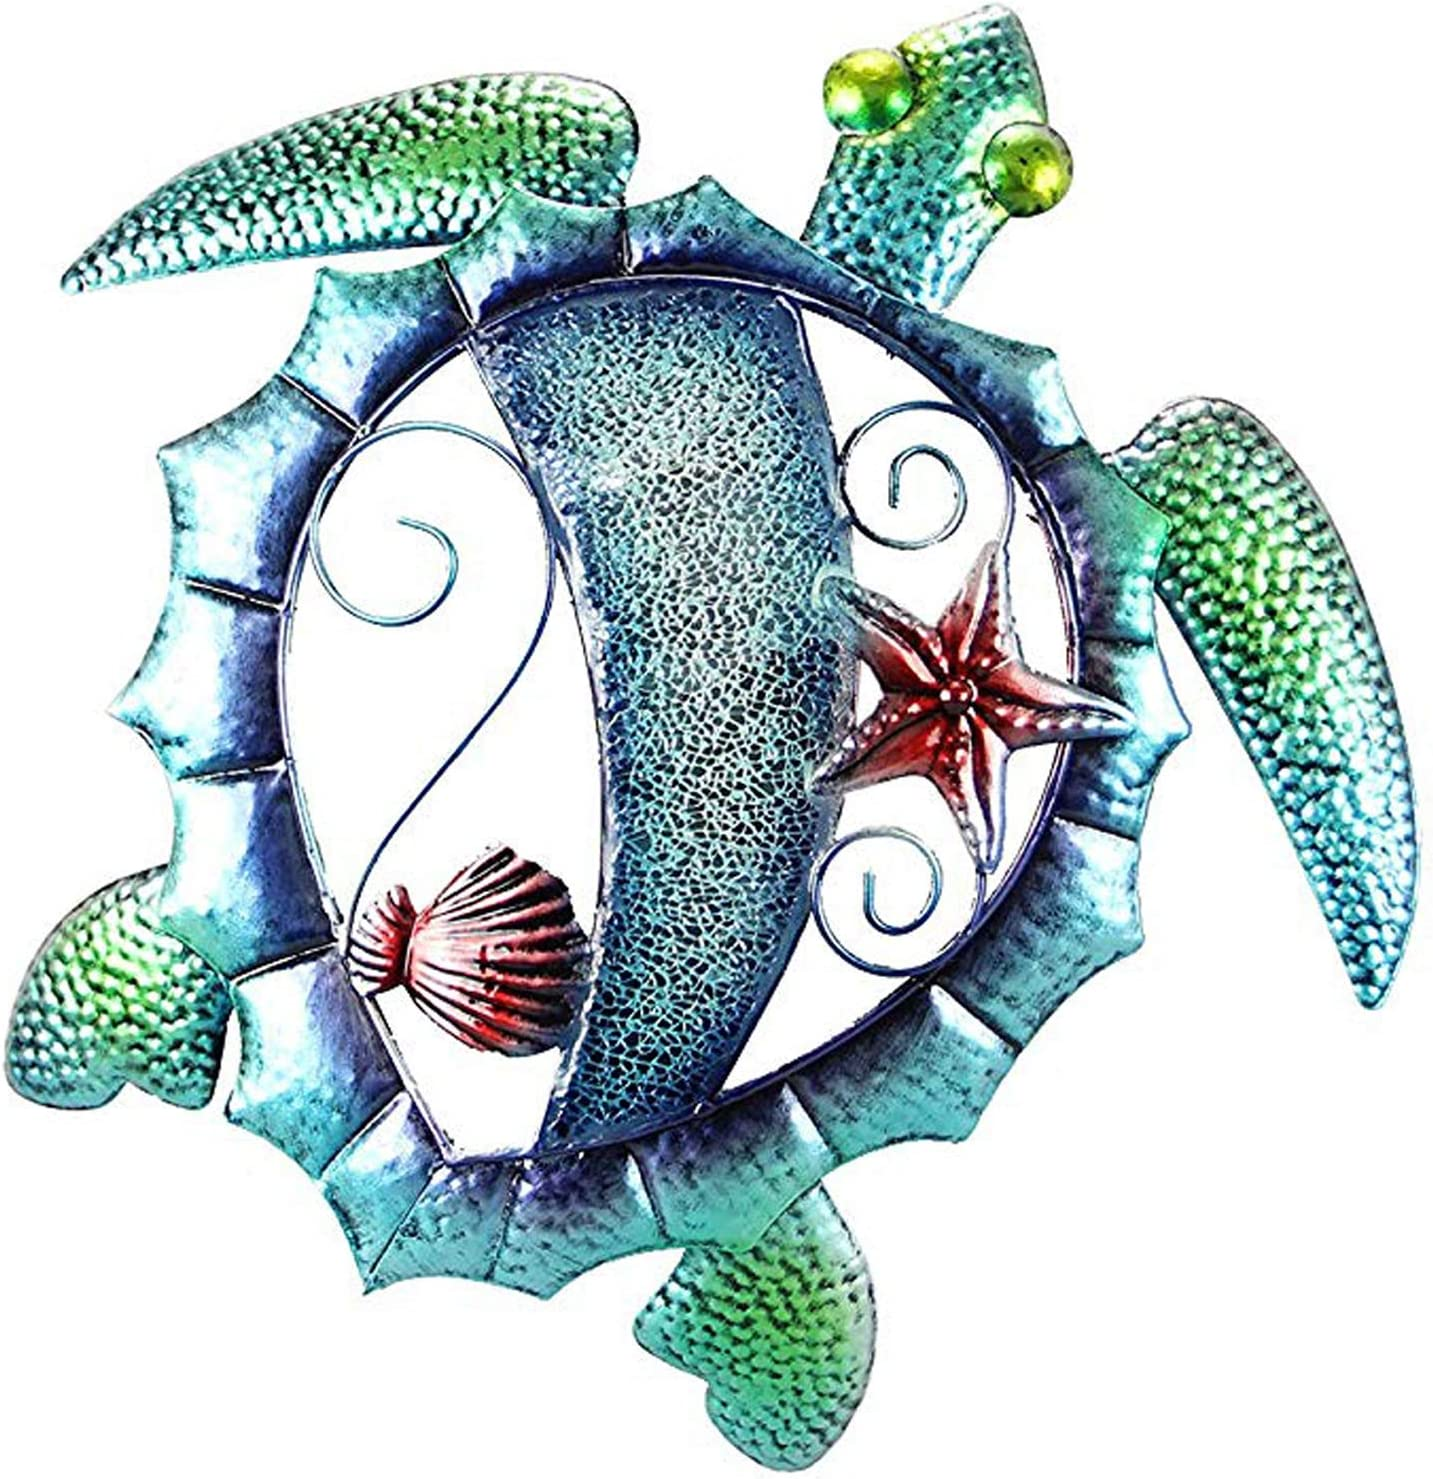 Ocean Sea Turtle Wall Decor Metal Mosaic Coastal Design 15.25 inches x 14.75 inches